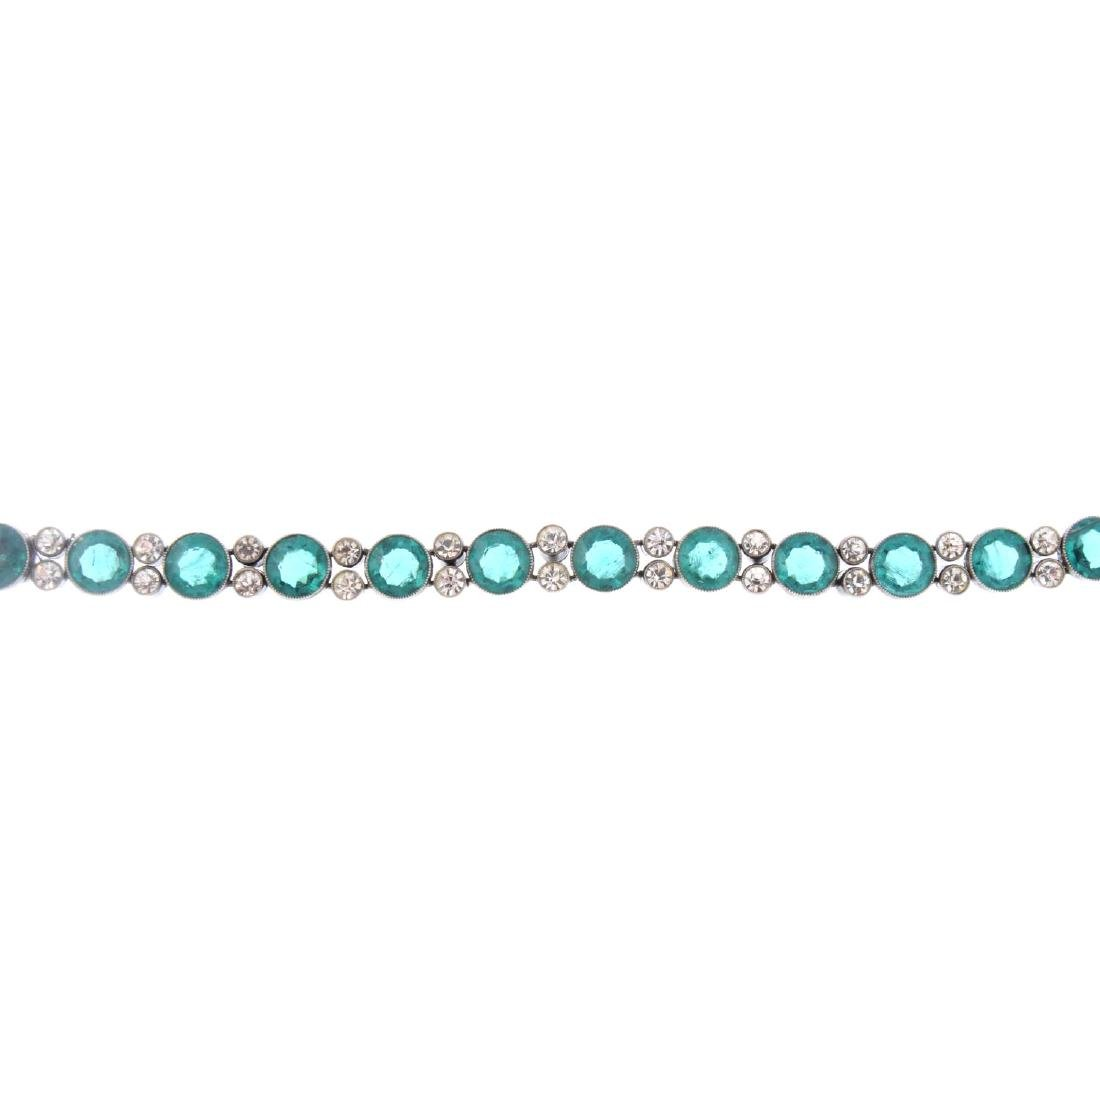 An early 20th century paste bracelet. Designed as